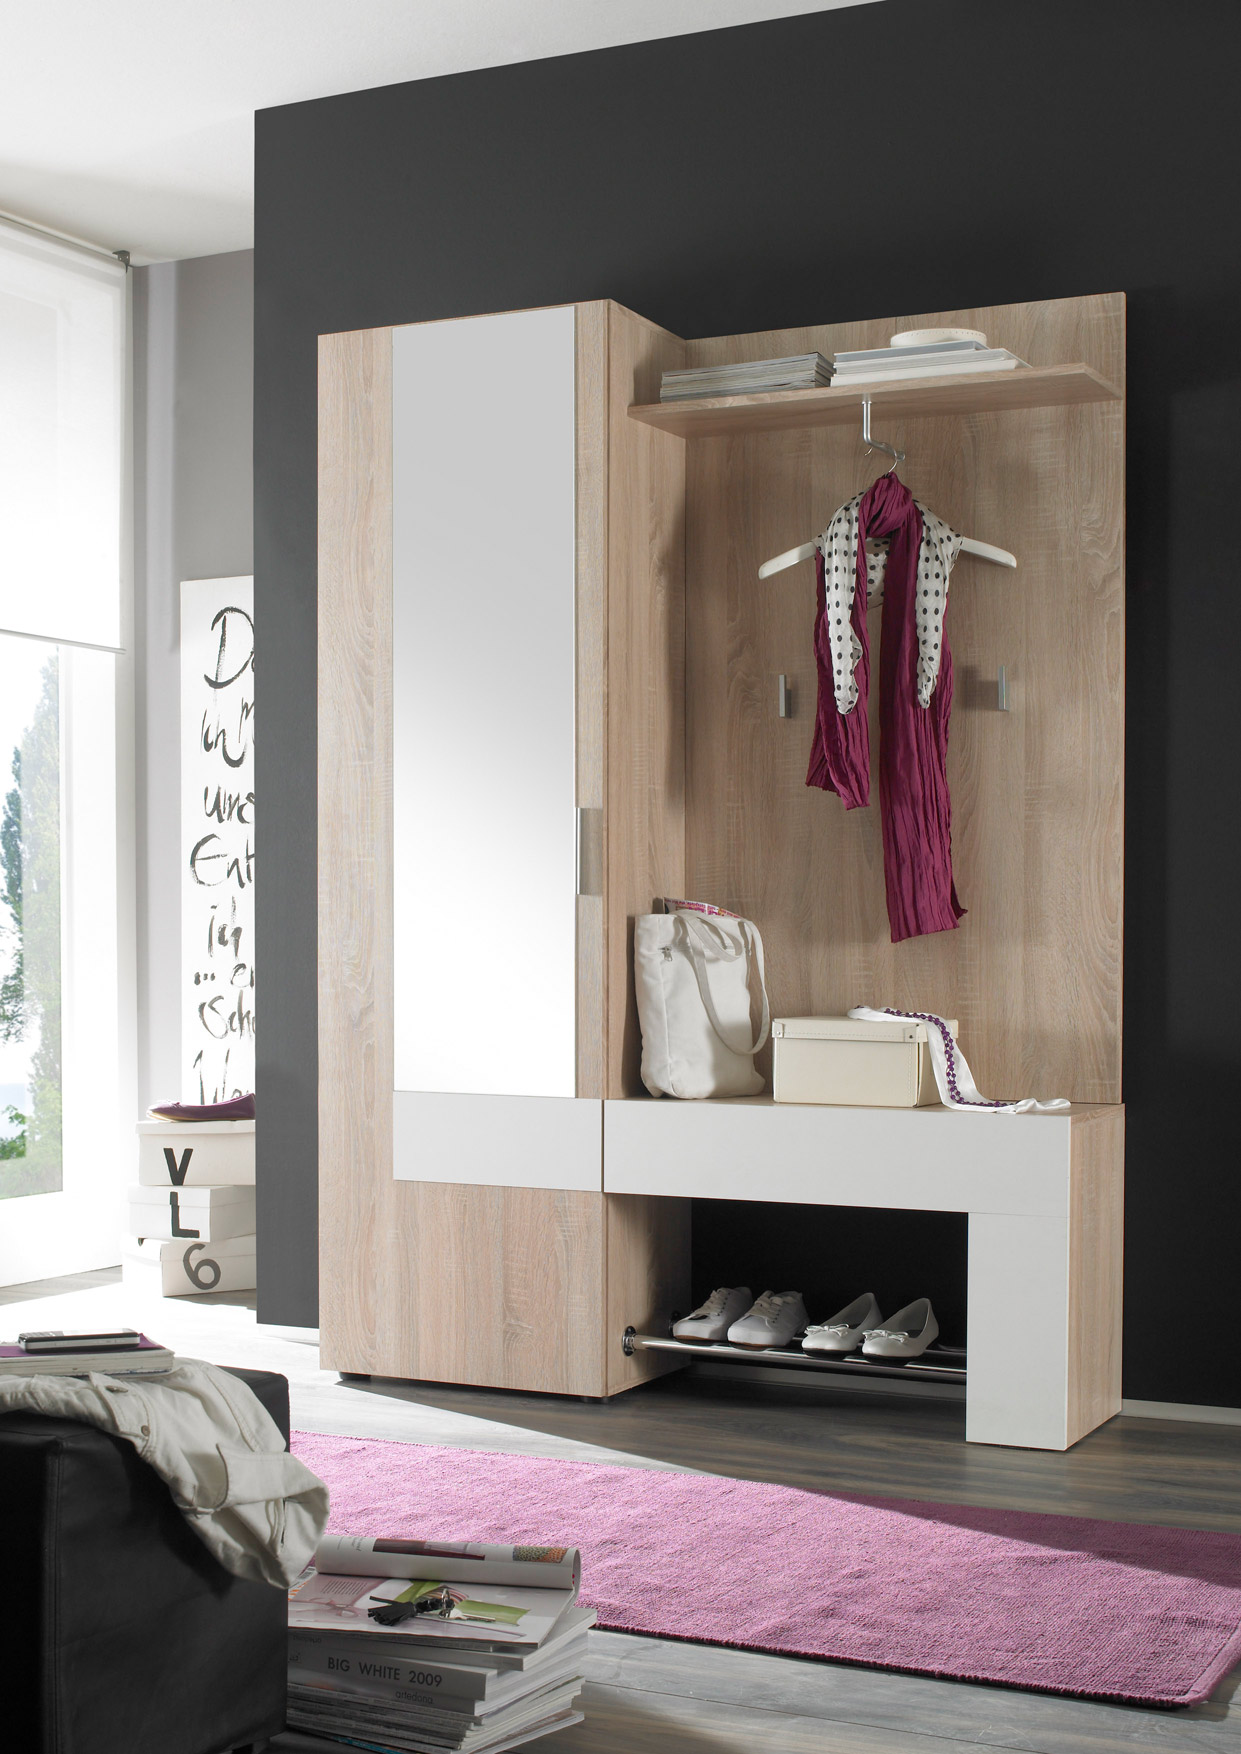 garderobenset garderobe wandgarderobe kompaktgarderobe. Black Bedroom Furniture Sets. Home Design Ideas